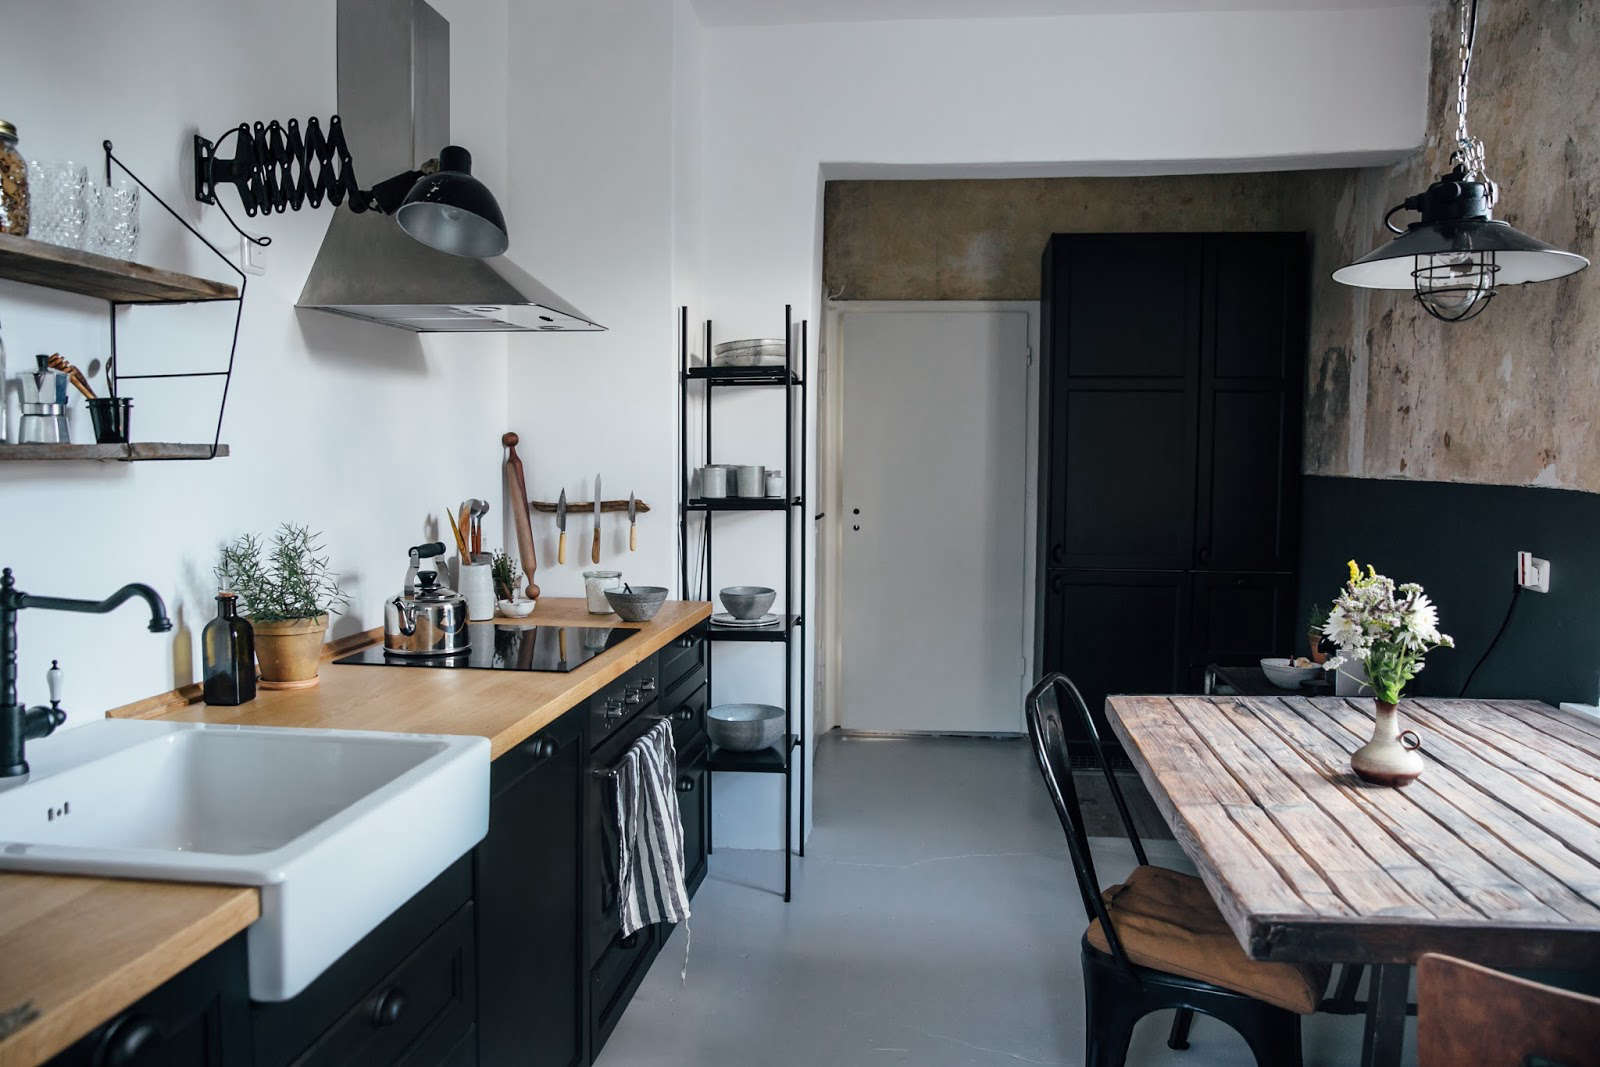 Muebles De Cocina Ikea 2016 Kitchen Of The Week: A Diy Ikea Country Kitchen For Two